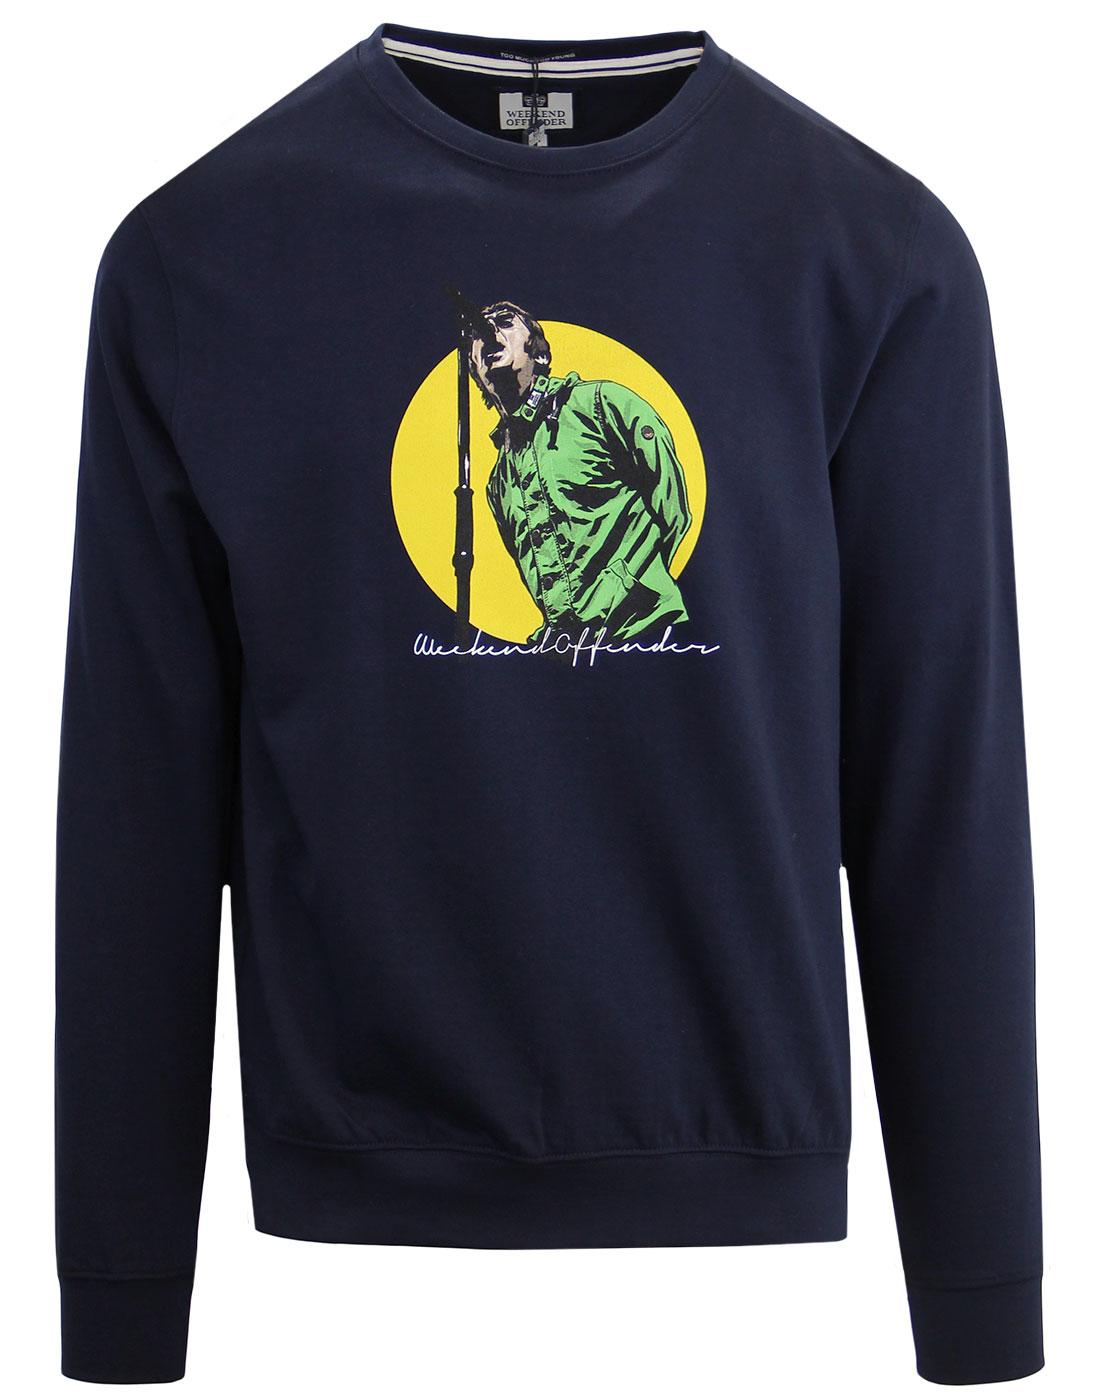 Liam WEEKEND OFFENDER Liam Gallagher Sweatshirt